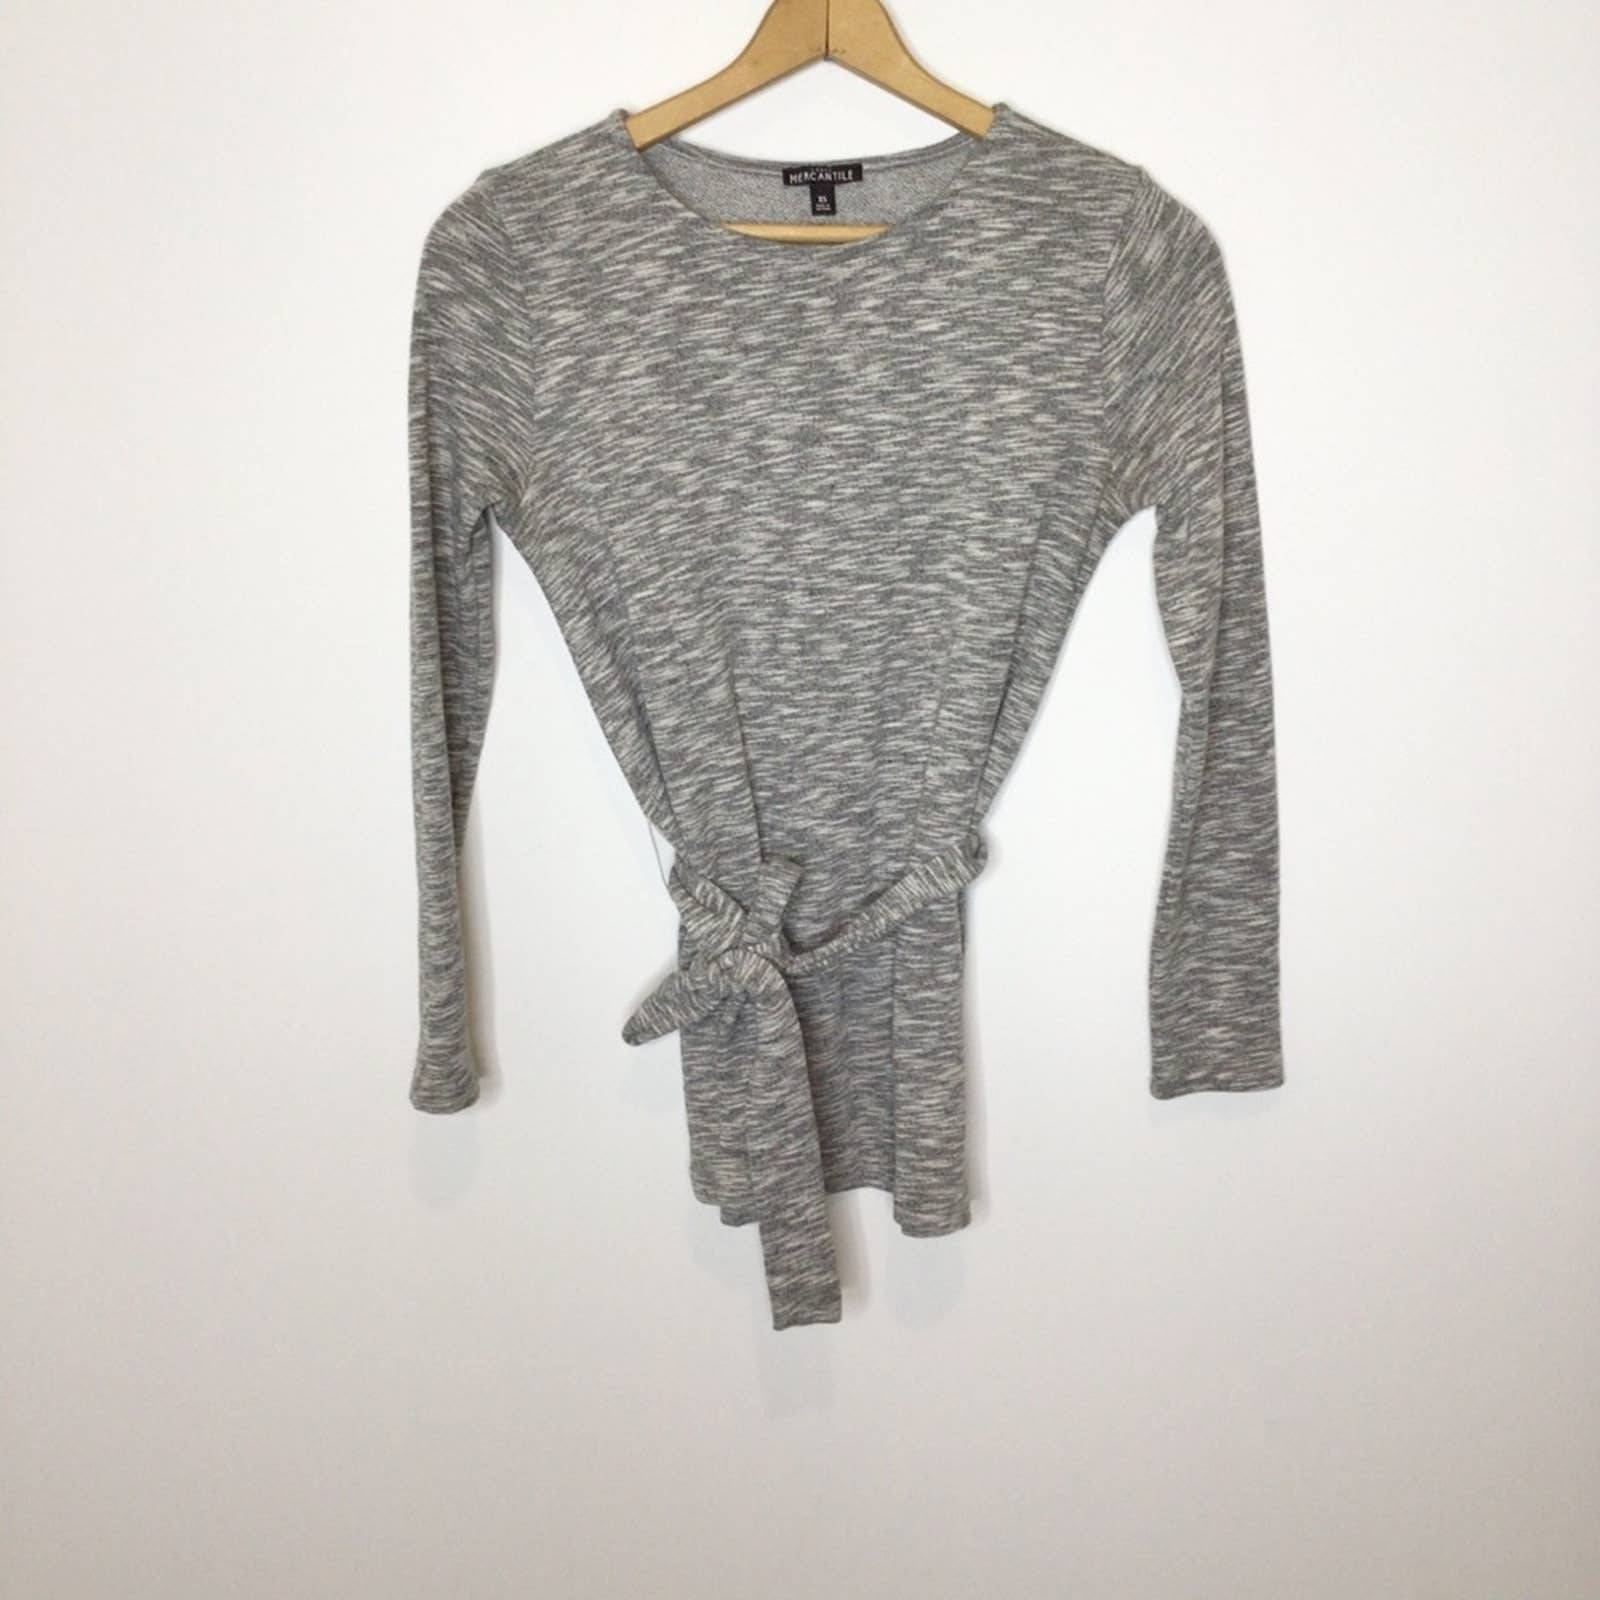 J.Crew Mercantile gray knit top XS EUC